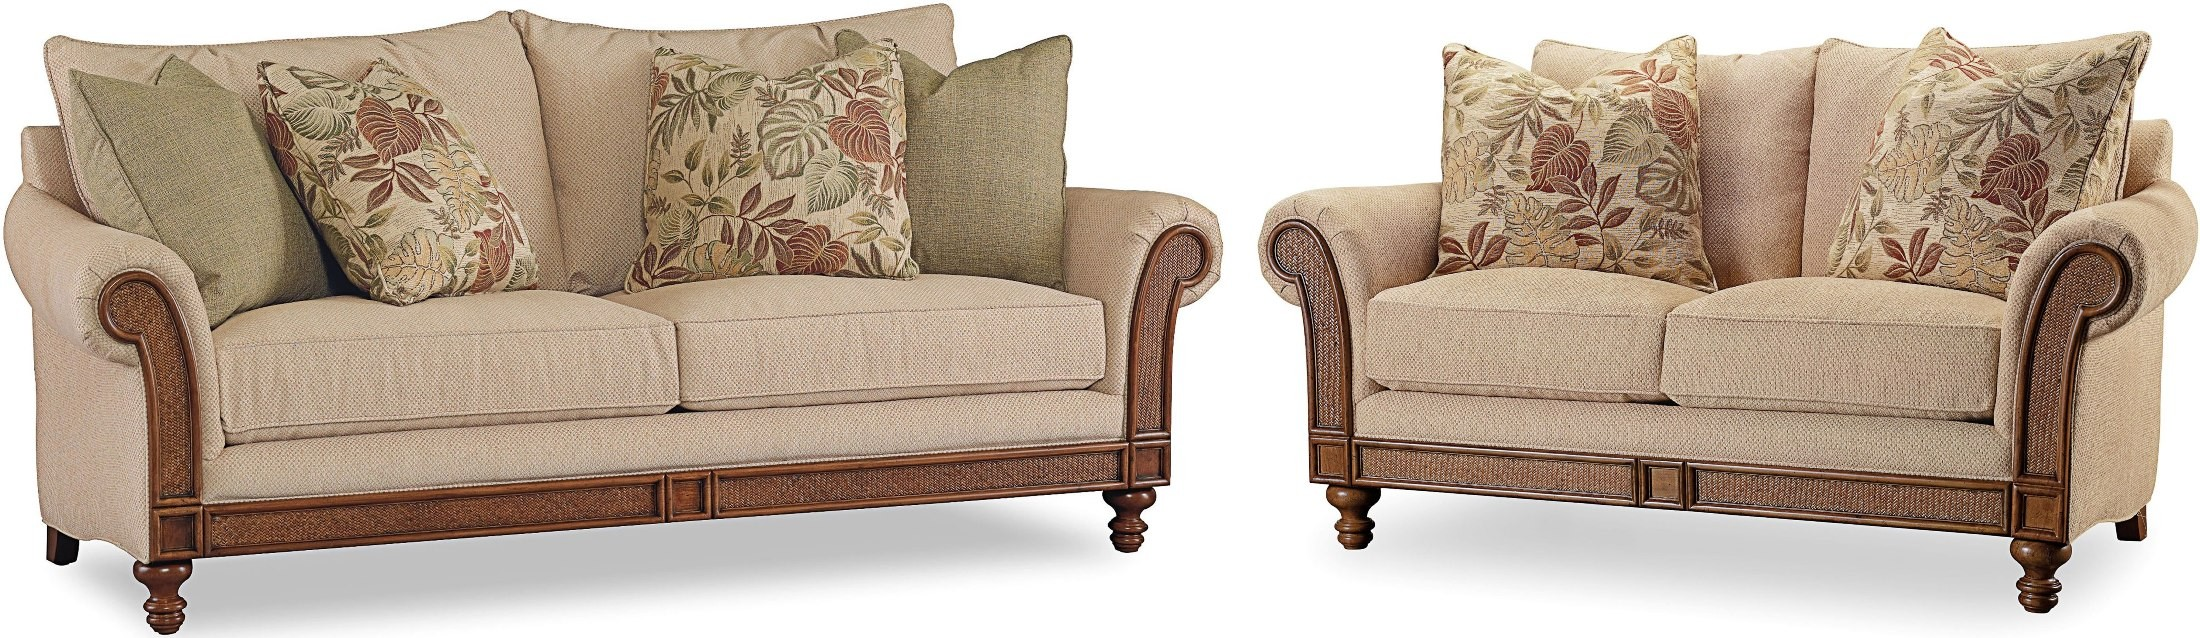 Windward Cherry Living Room Set From Hooker Coleman Furniture